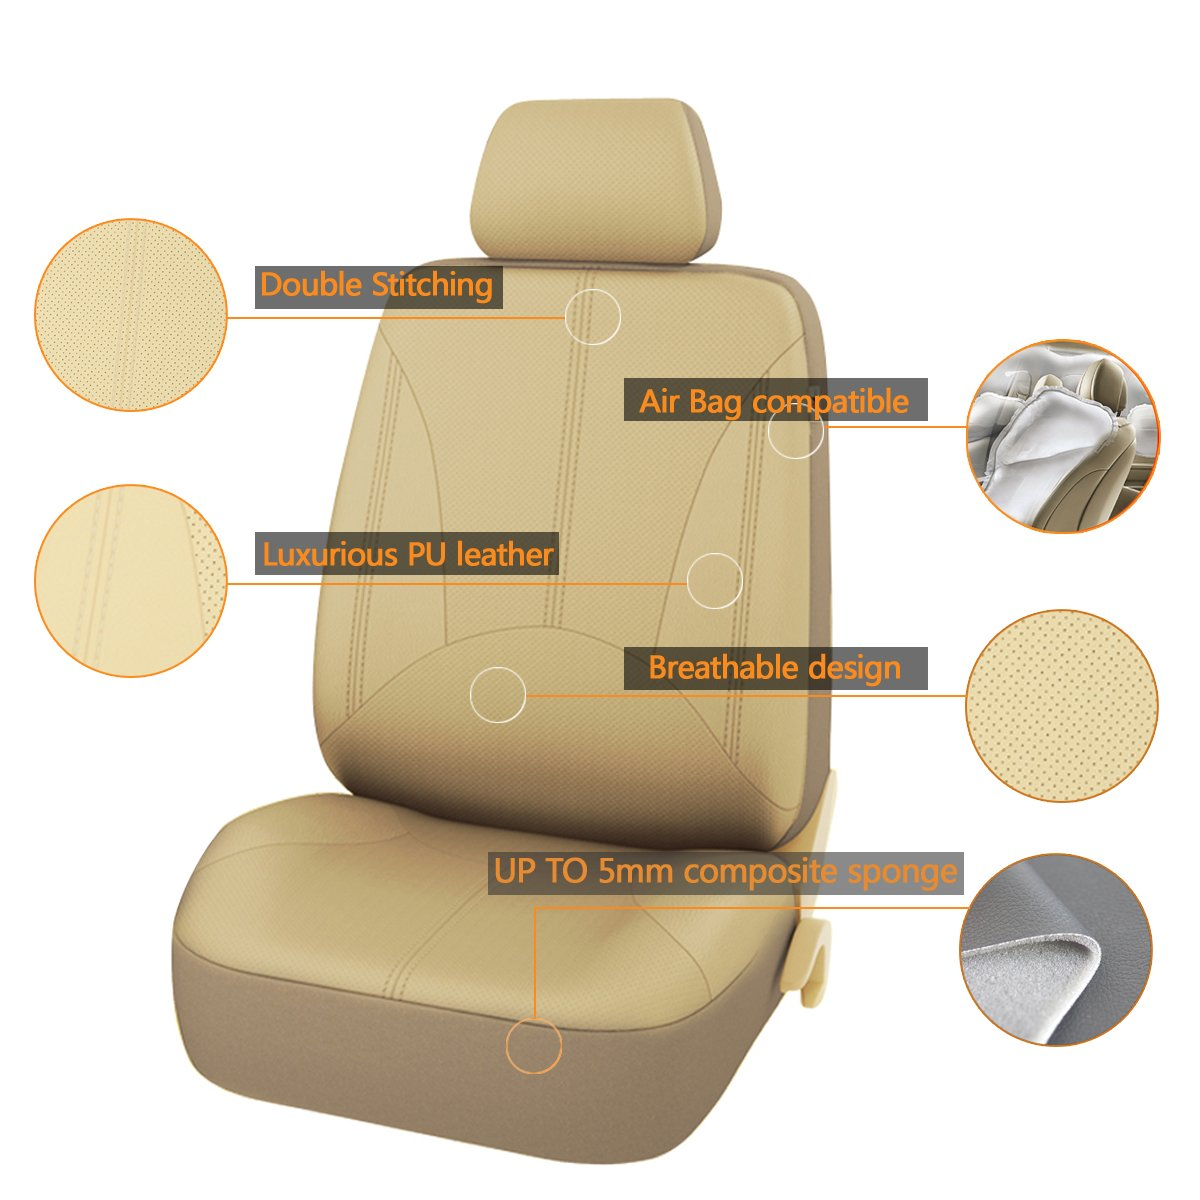 Truck SUV WAZA Car Seat Covers PU Leather Seat Covers Common for Universal Fit Most Car Black or Van